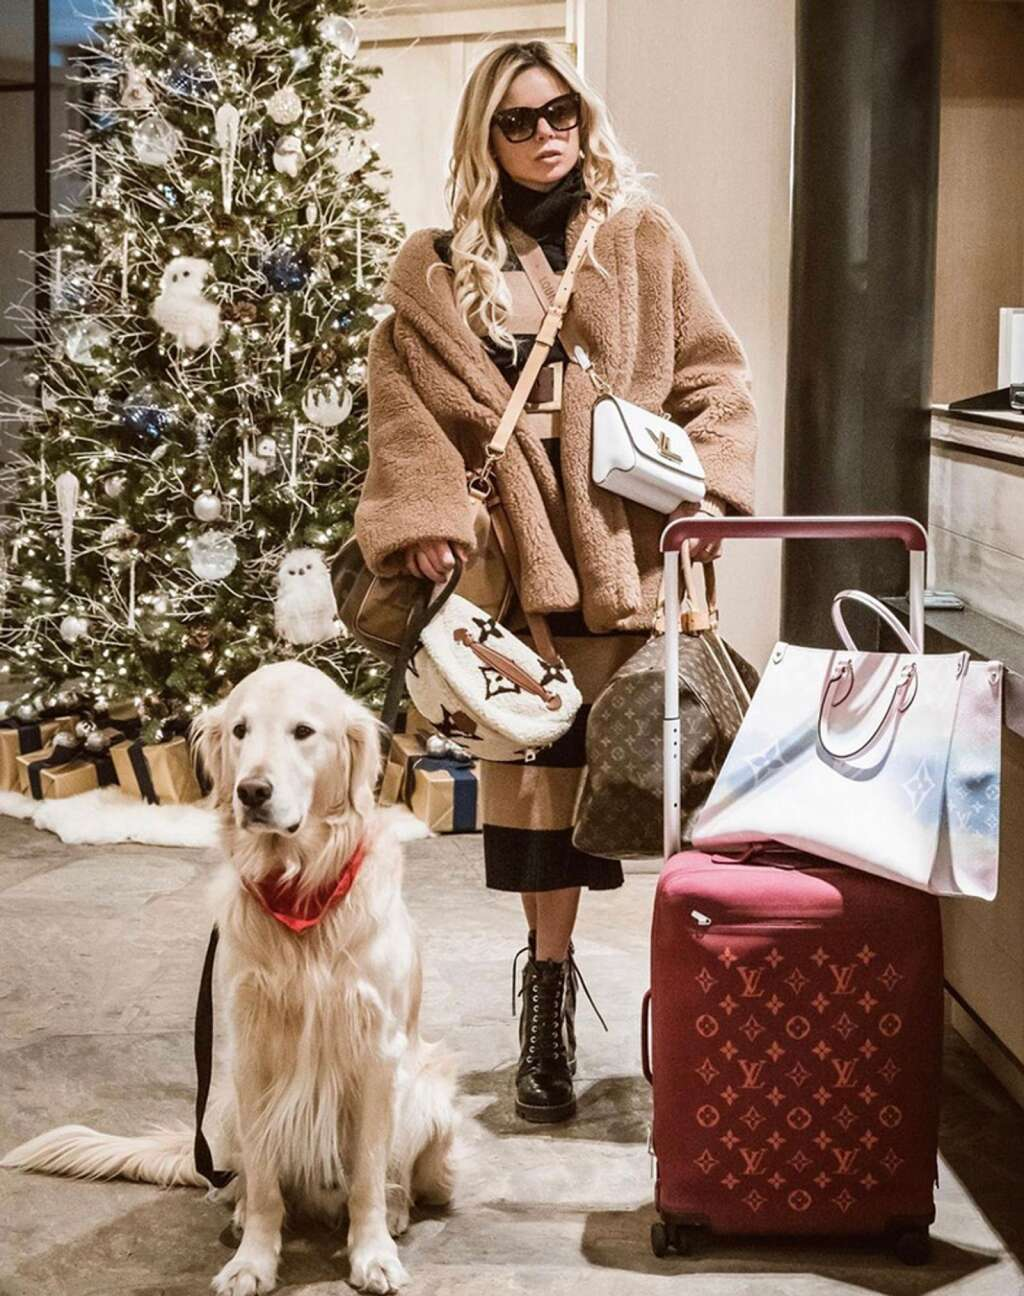 Cashmere the Golden and Erica Pelosini arriving in Aspen for the holidays. Courtesy photo.